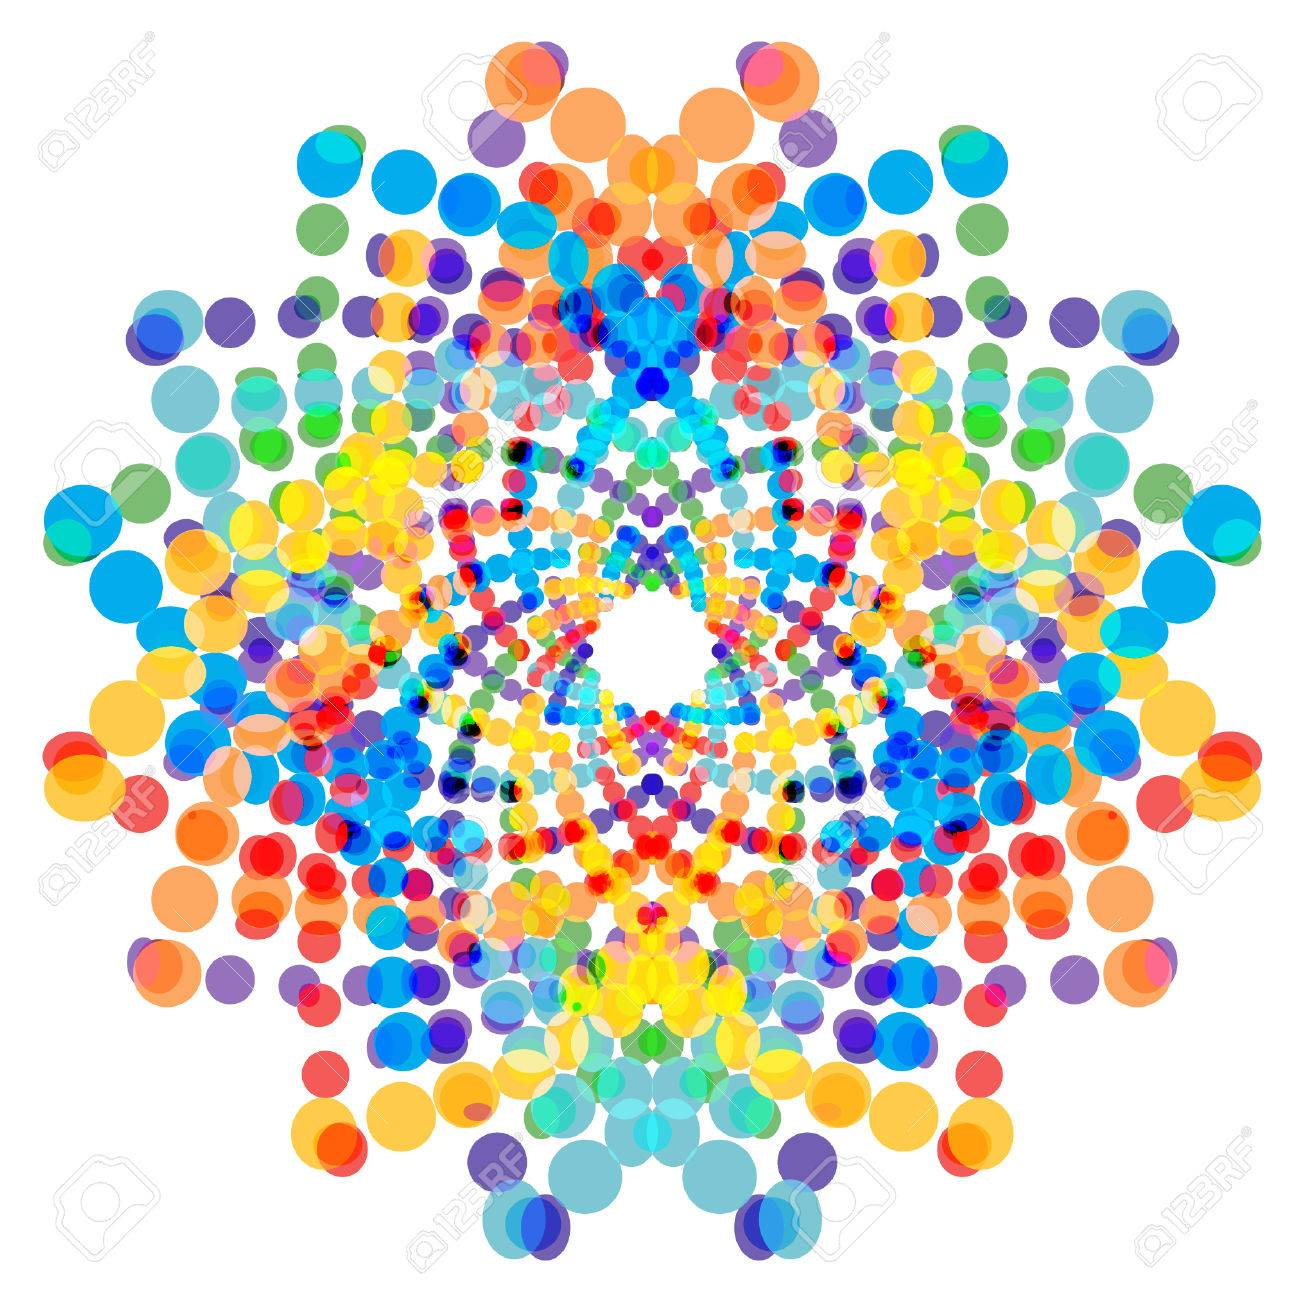 Colorful Abstract Shape Design Element